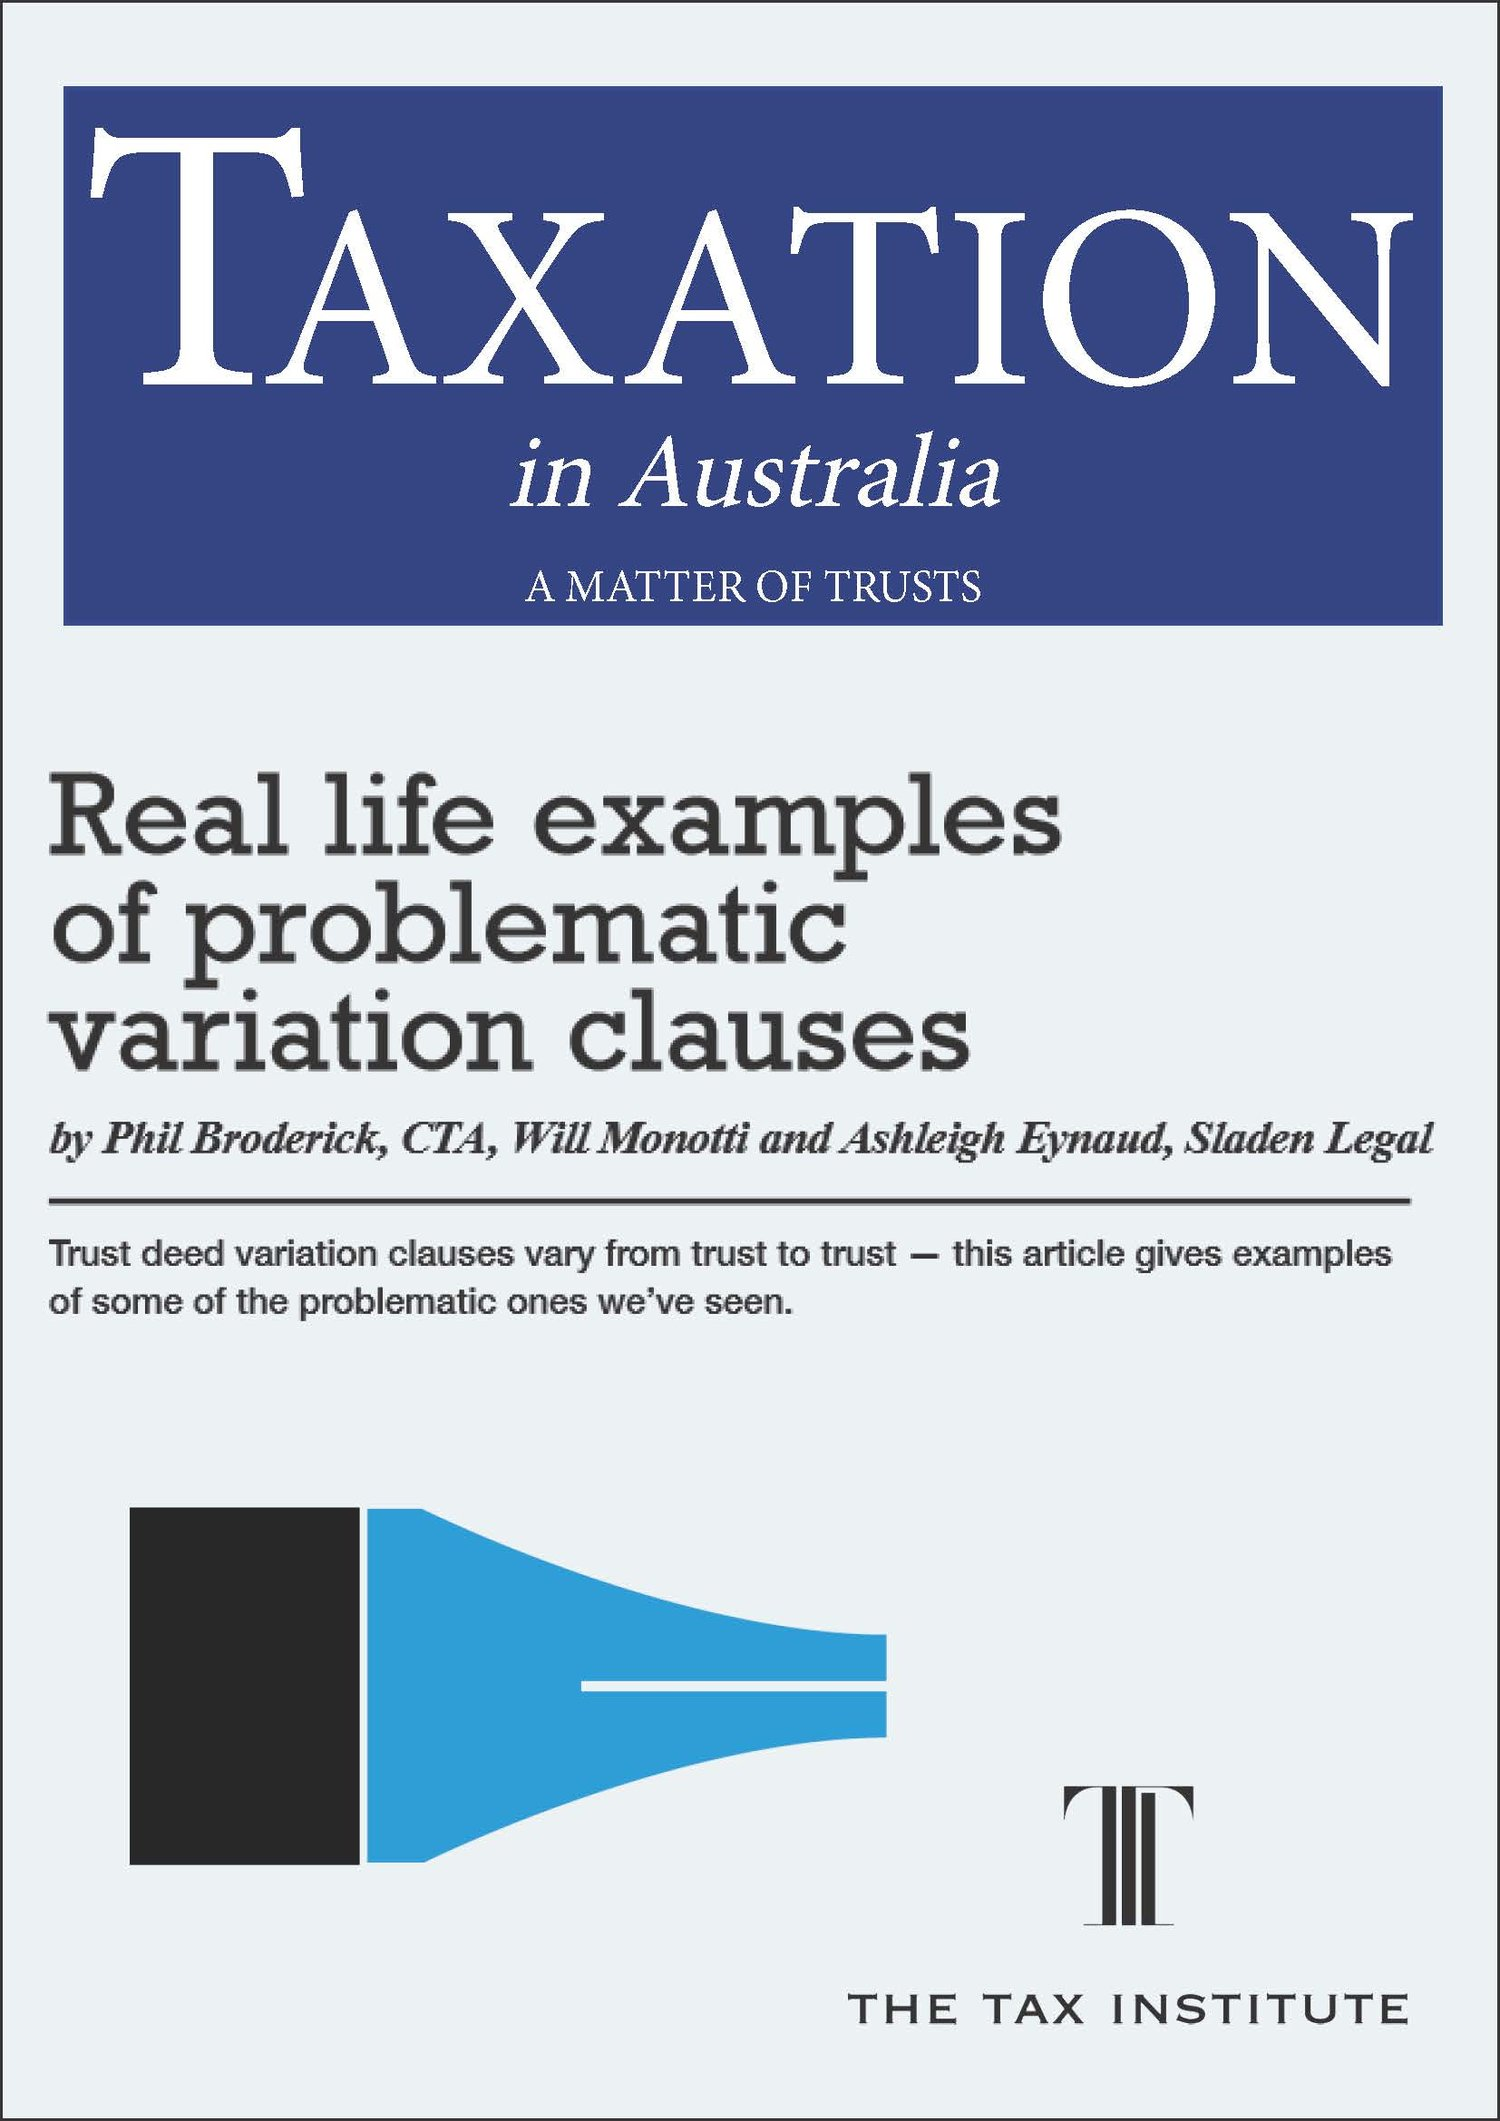 real life examples of problematic variation clauses sladen legal